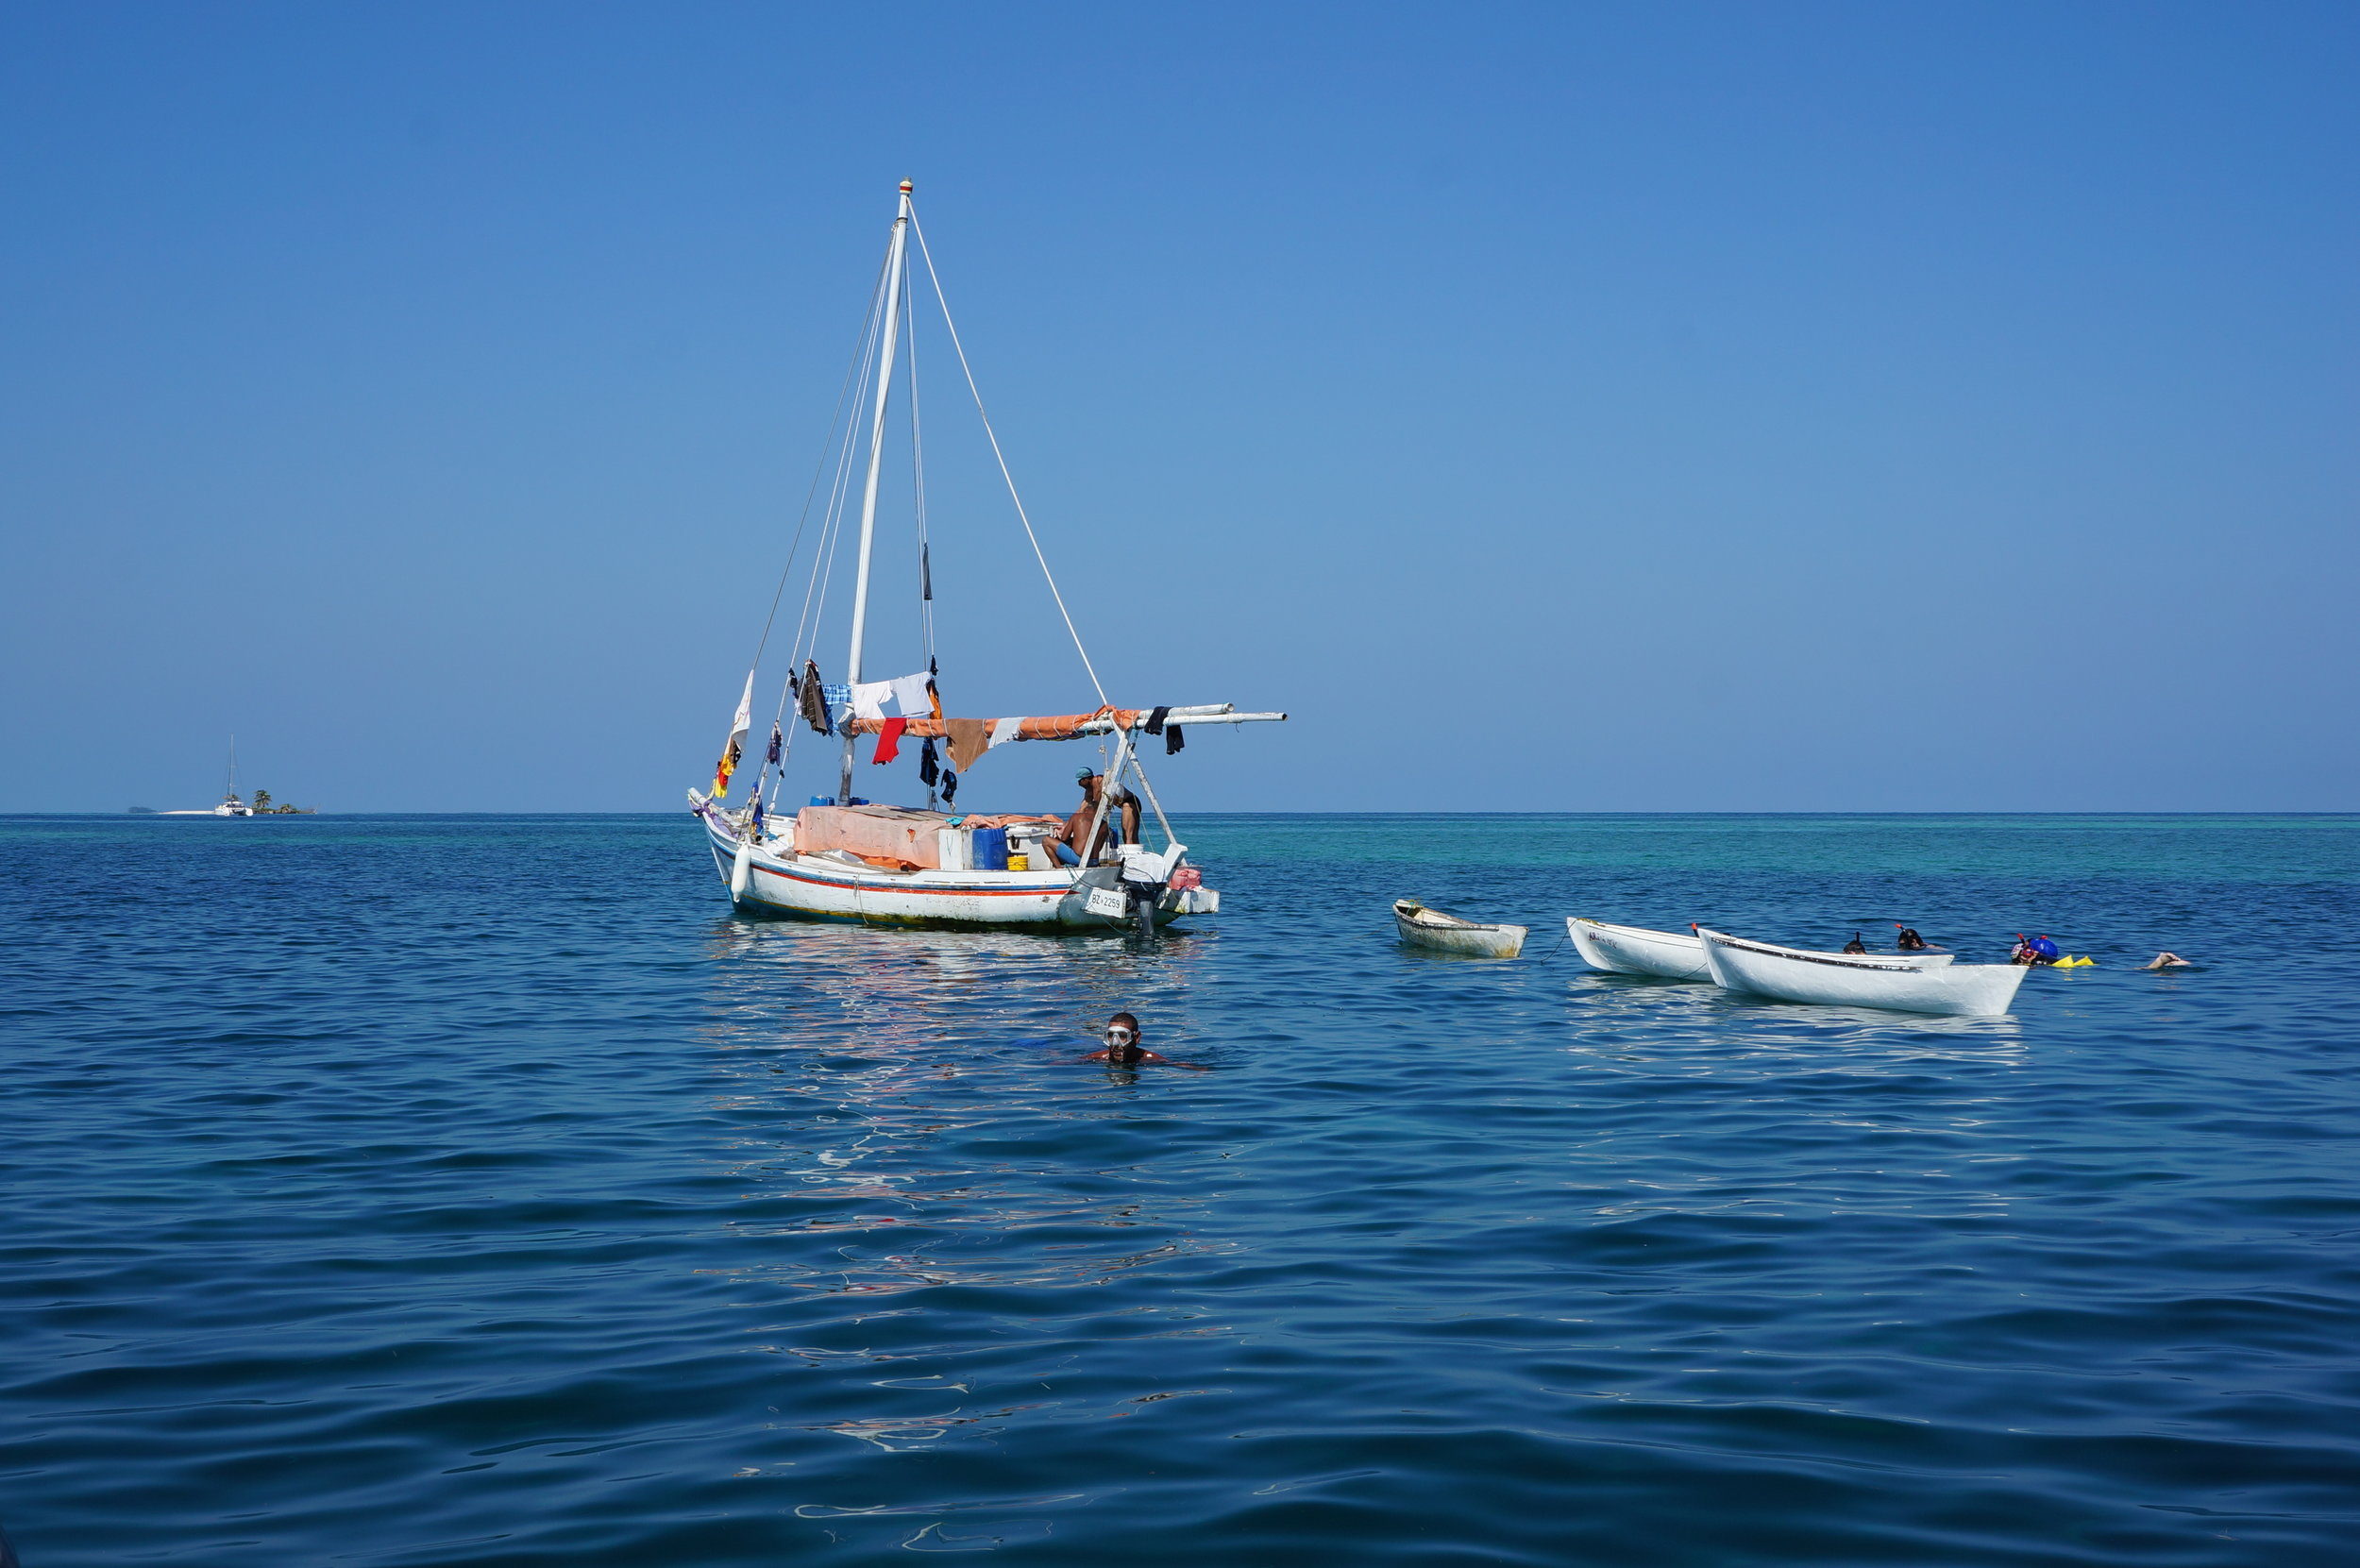 The lobster boat mentioned above and snorkeling out to catch views of loggerhead turtles, sharks, and spotted eagle rays